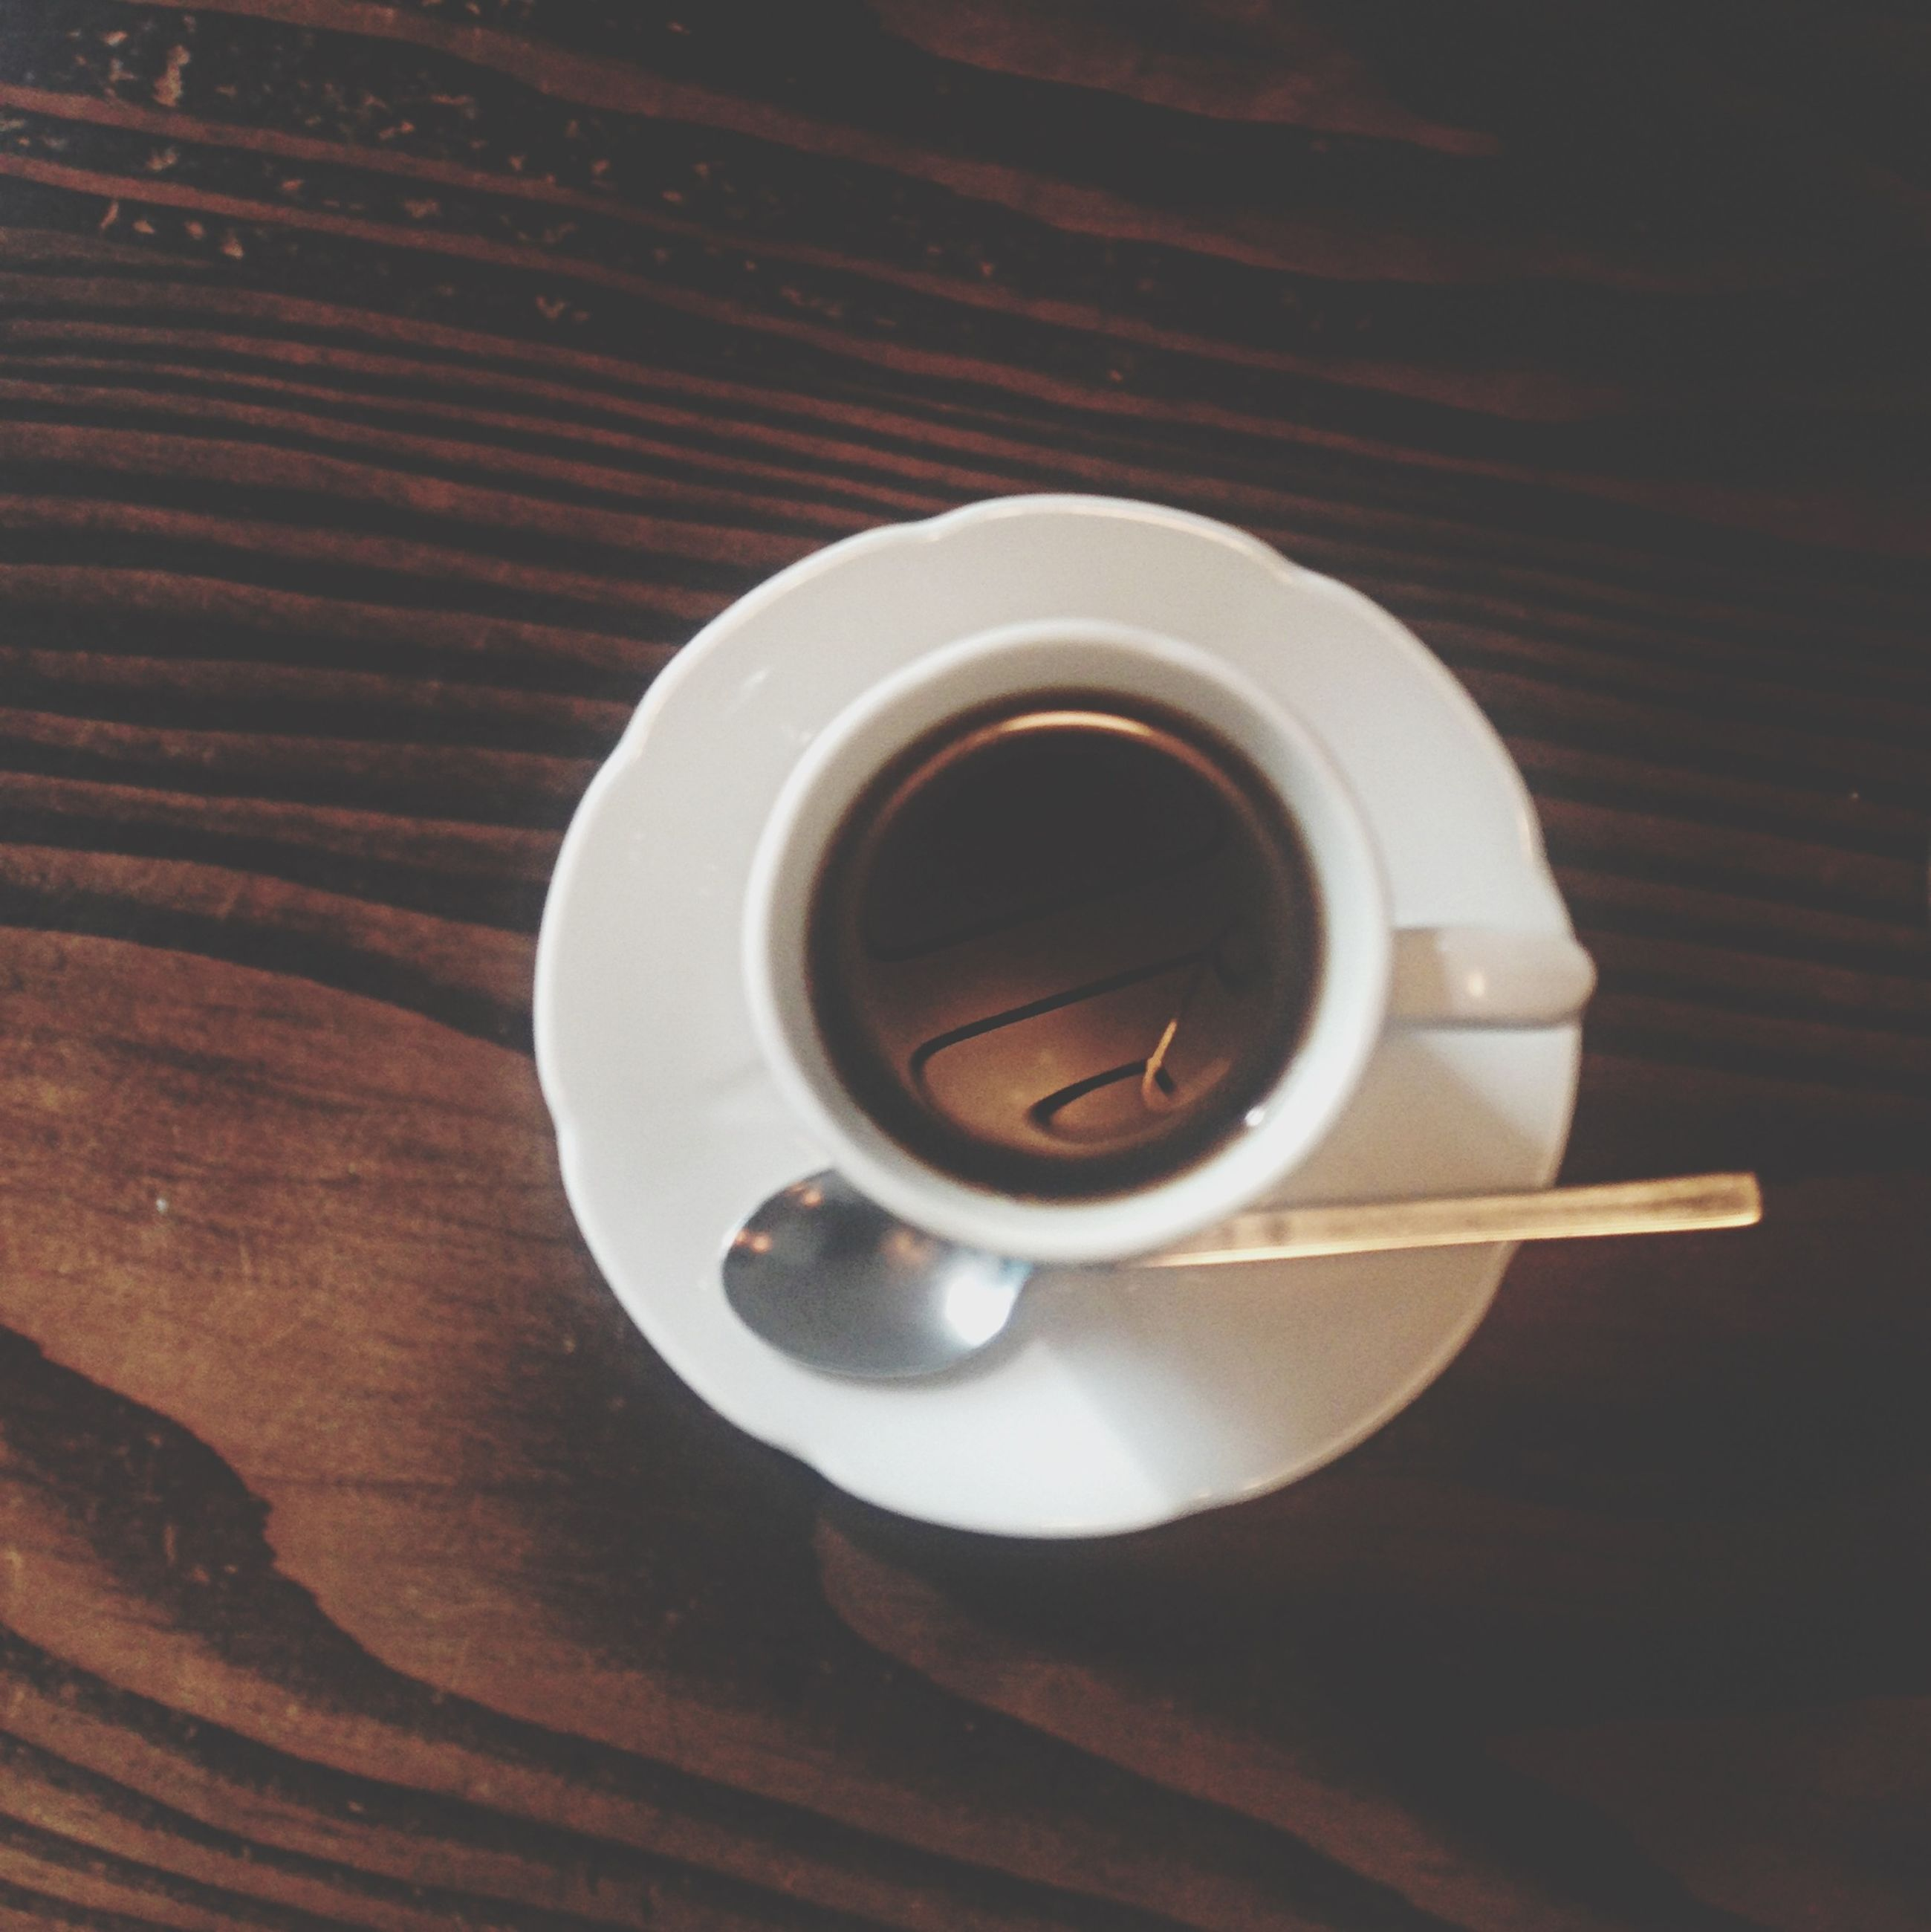 coffee cup, indoors, drink, coffee - drink, table, refreshment, saucer, still life, directly above, food and drink, coffee, high angle view, cup, close-up, wood - material, freshness, no people, spoon, overhead view, black coffee